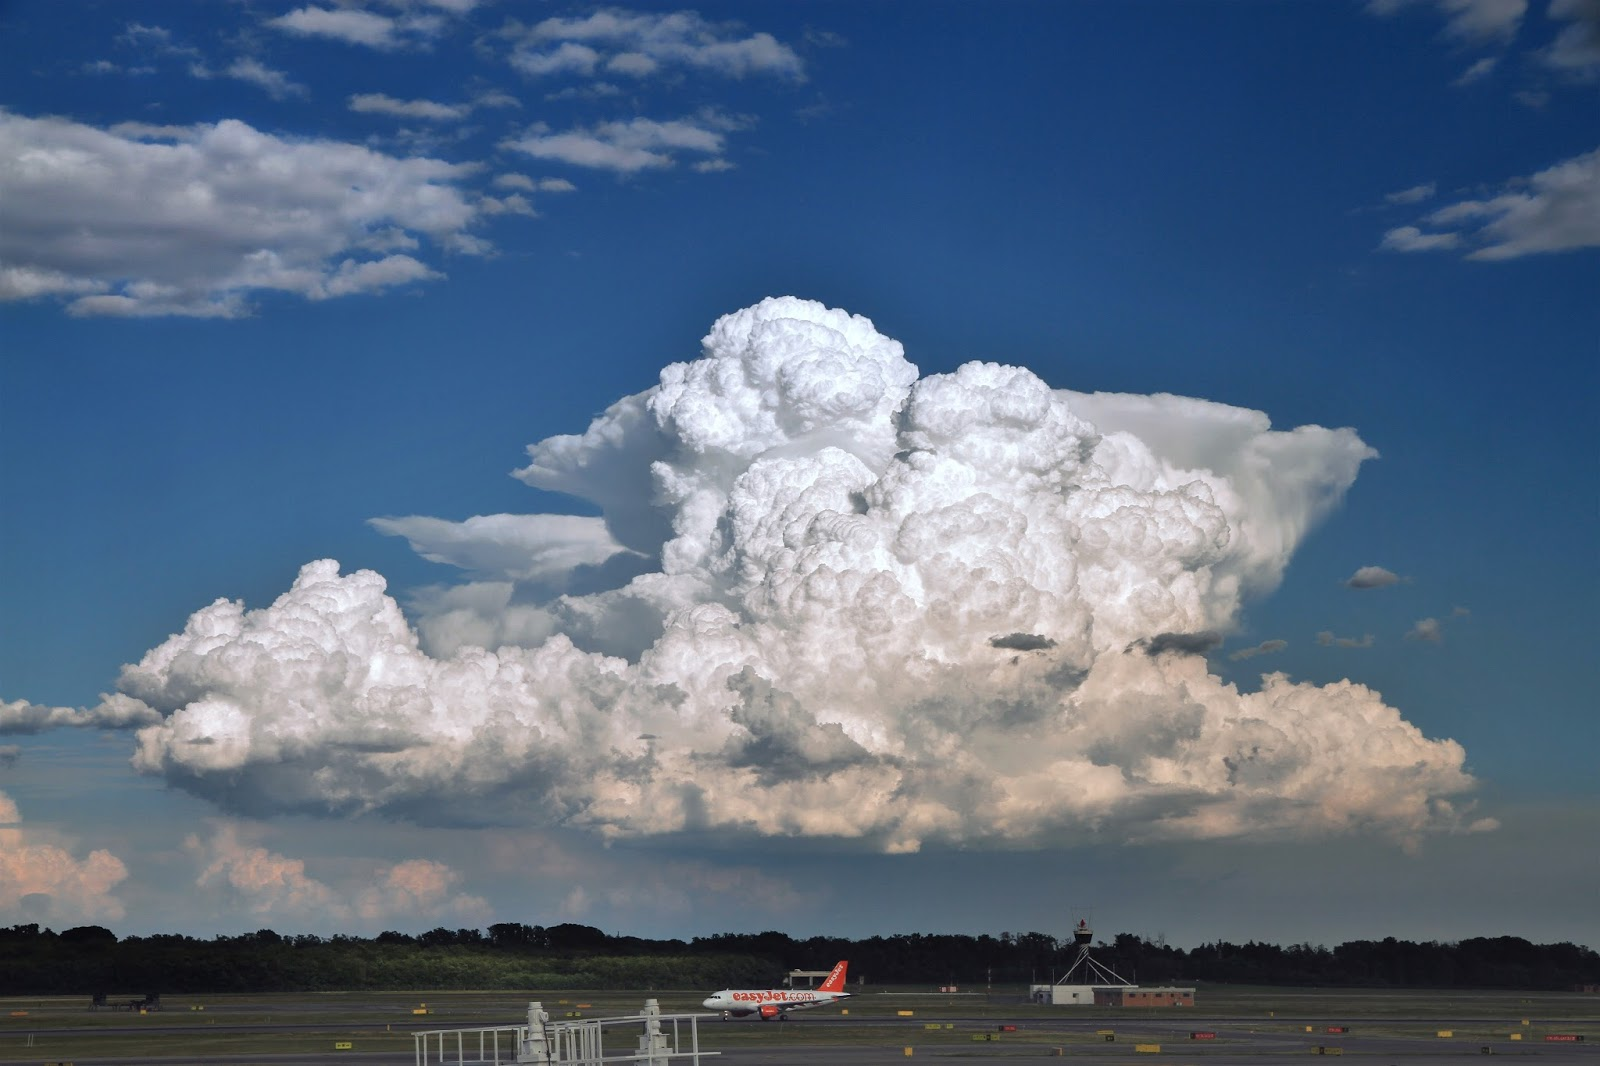 More cumulonimbus calvus with cumulonimbus capillatus in the background as seen from Milano-Malpensa airport to the north in August 3, 2010. Created 3 Apr 2010. Retrieved from Wikimedia Commons. Author: Ximonic,.